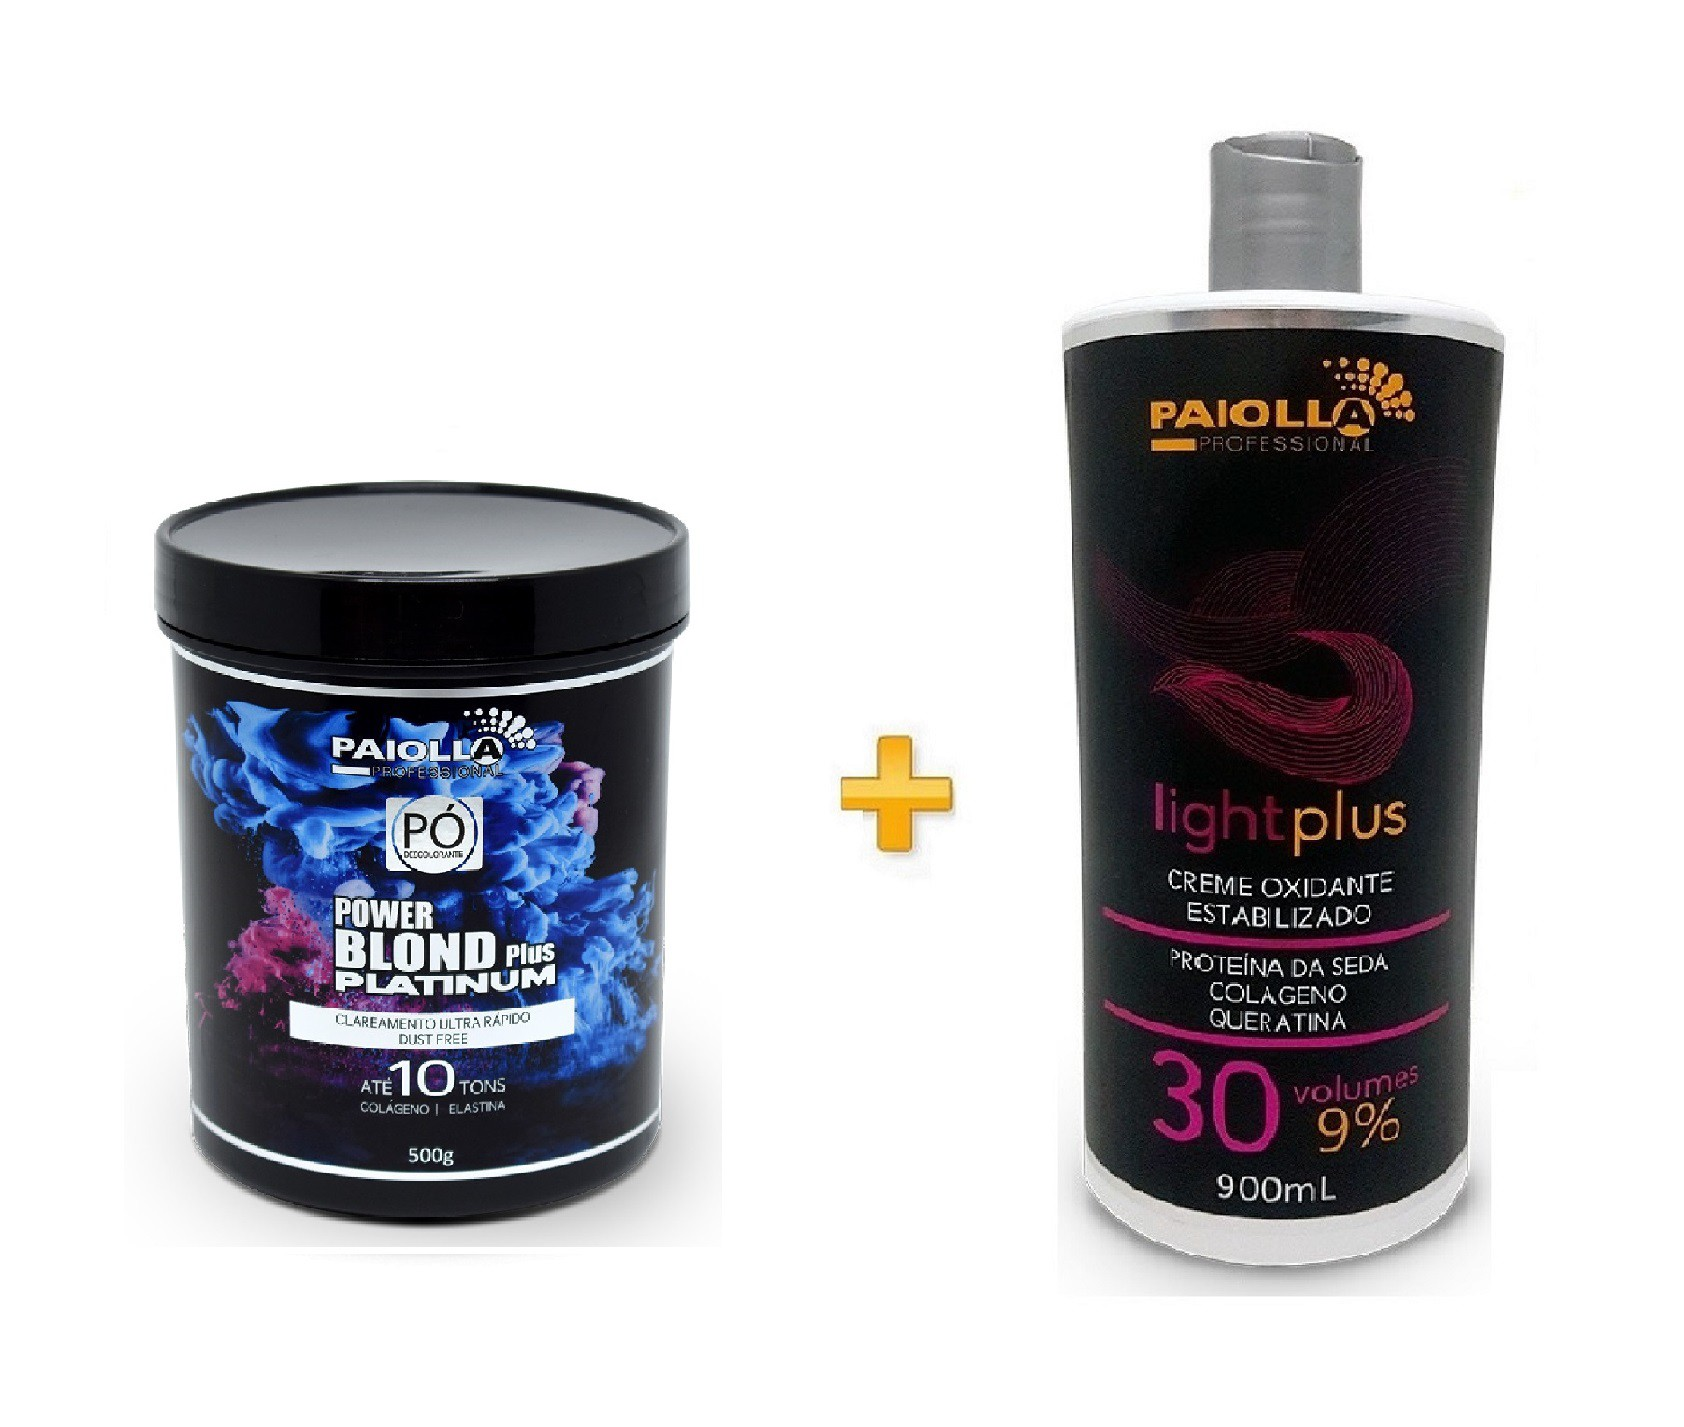 COMBO Pó Descolorante Power Blond Plus Platinum 500g + Creme Oxidante Estabilizado 30 volumes